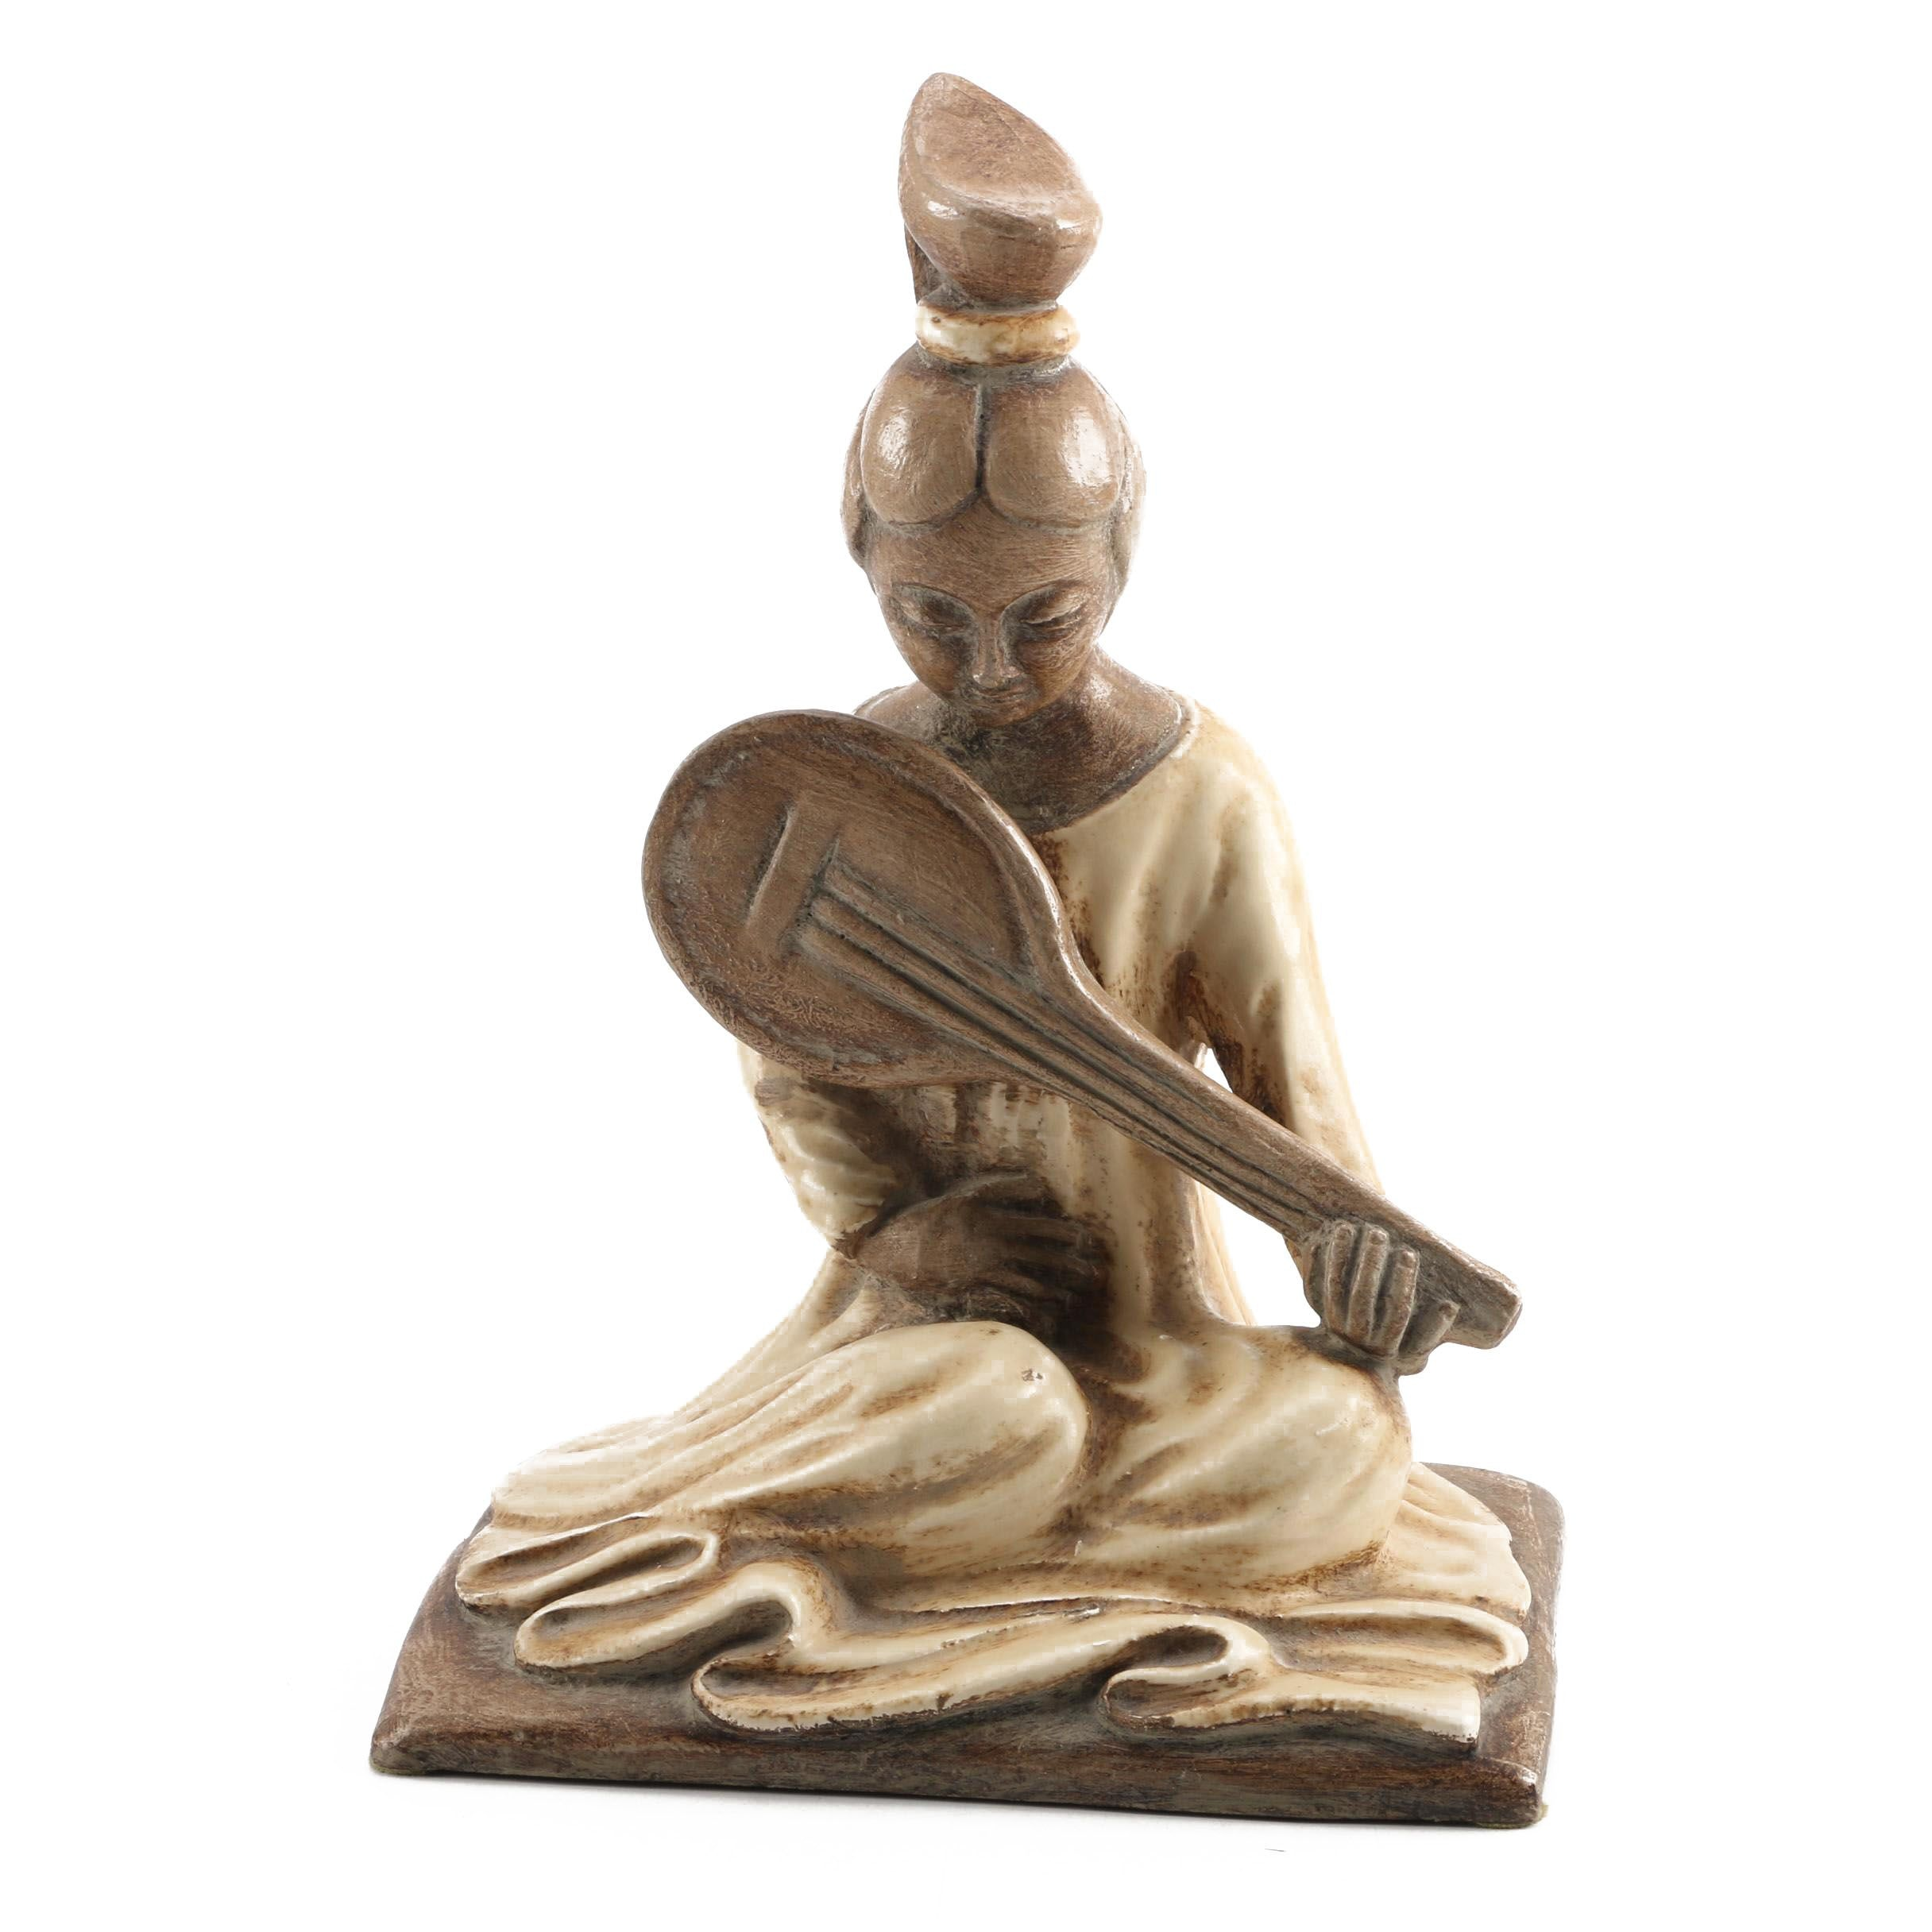 Chinese-Inspired Sculpture with Mandolin